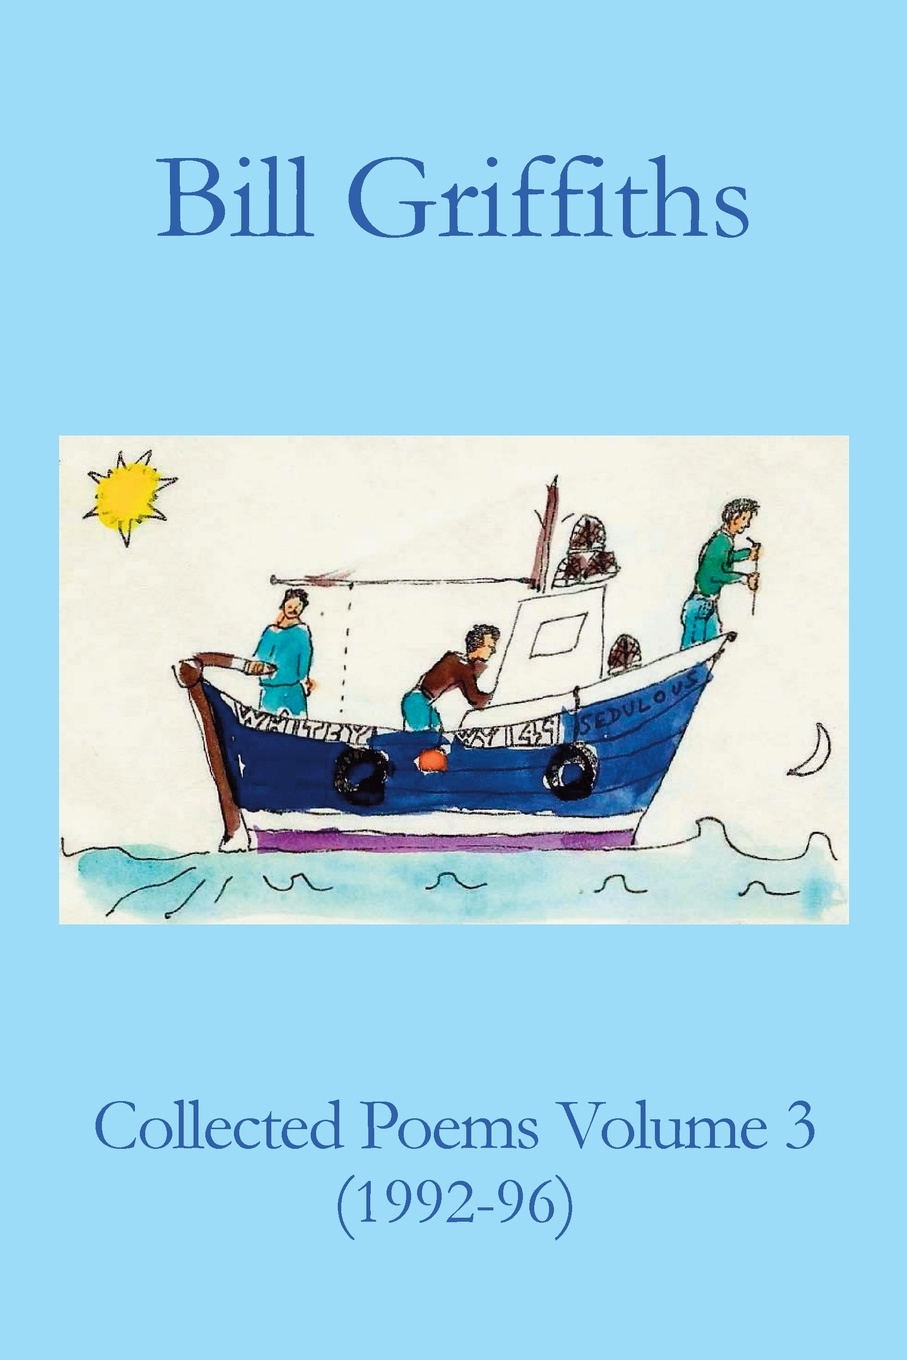 Bill Griffiths Collected Poems Volume 3